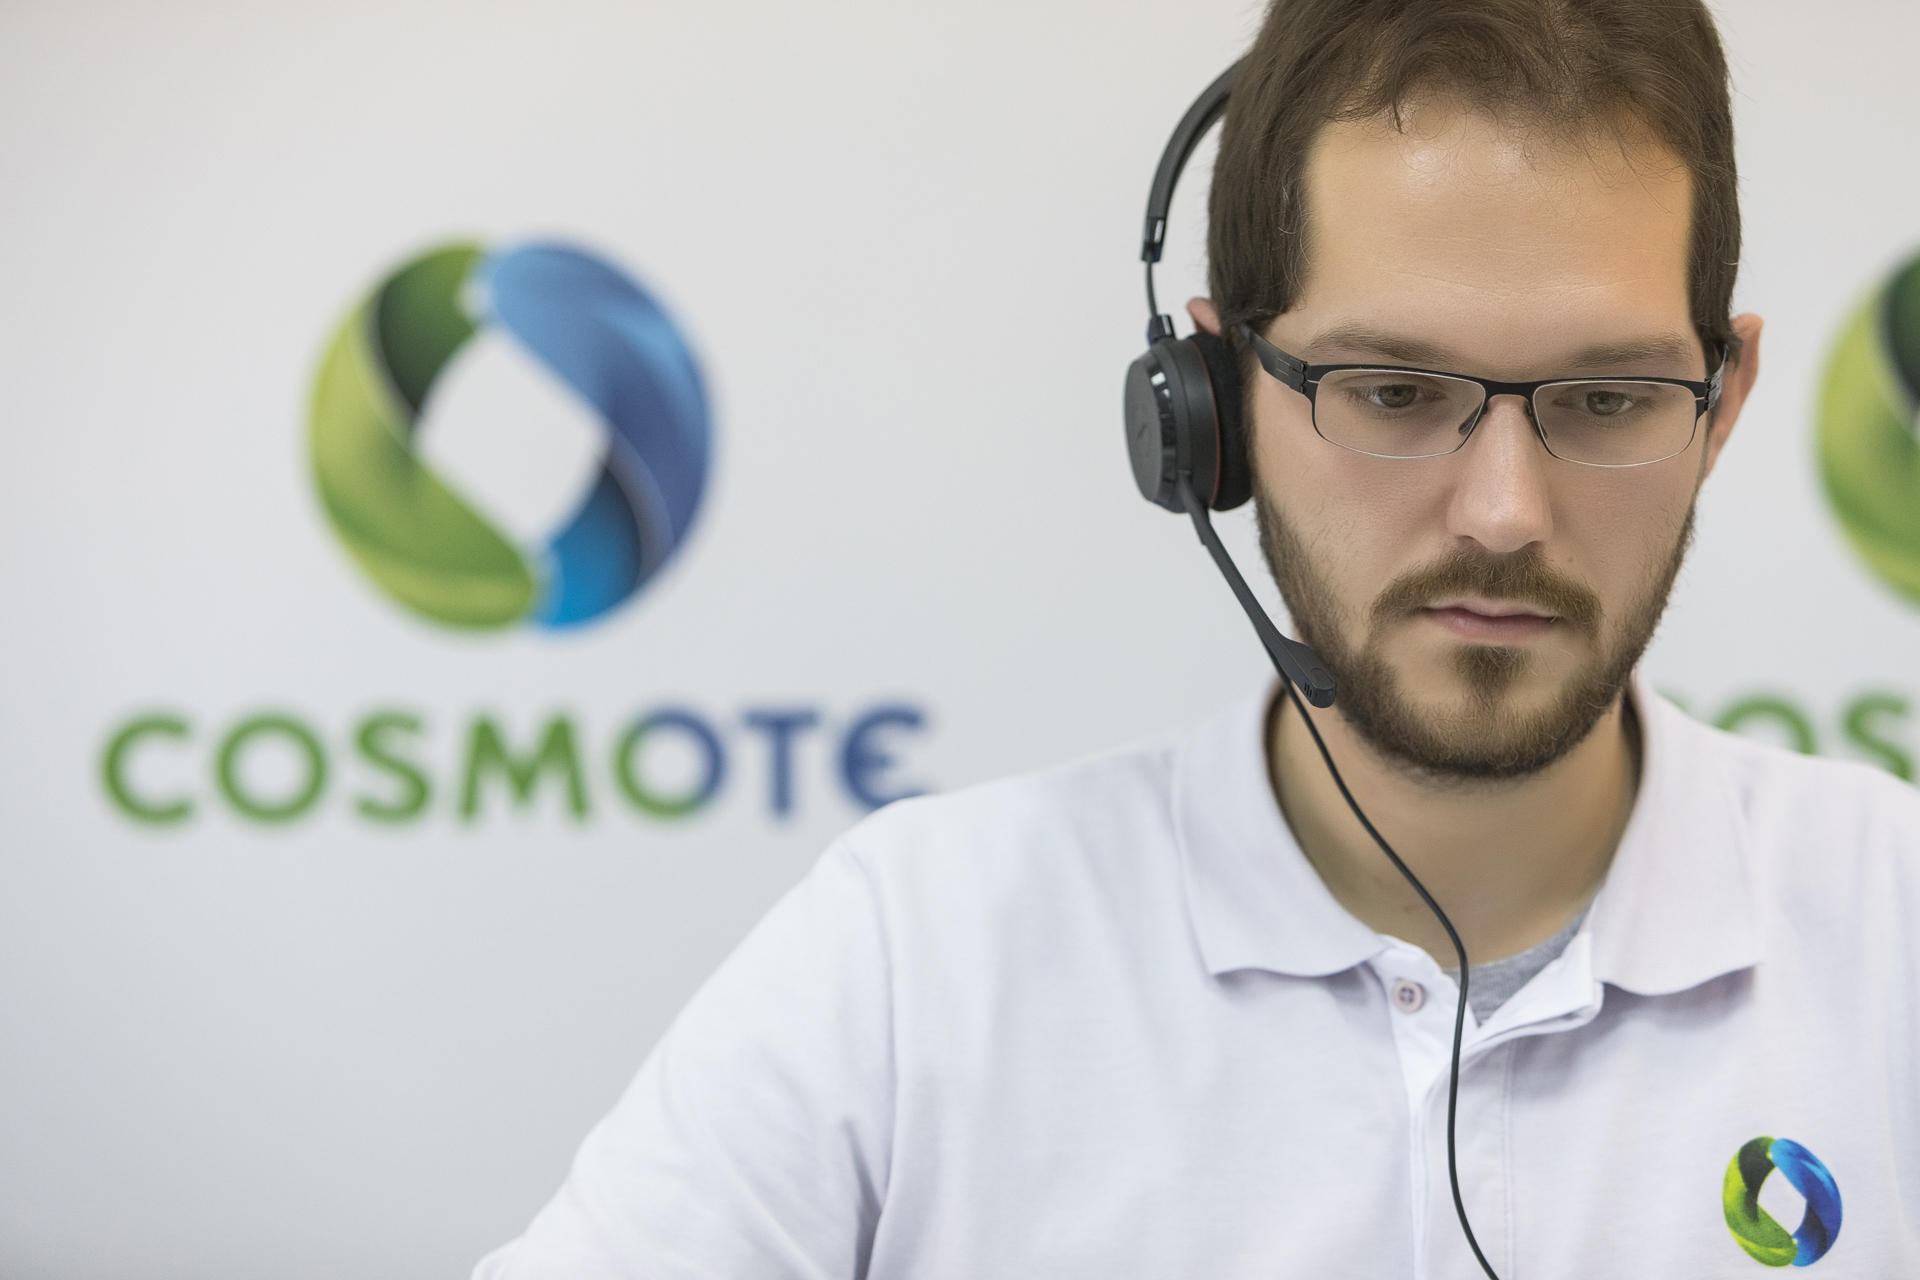 COSMOTE Customer Care